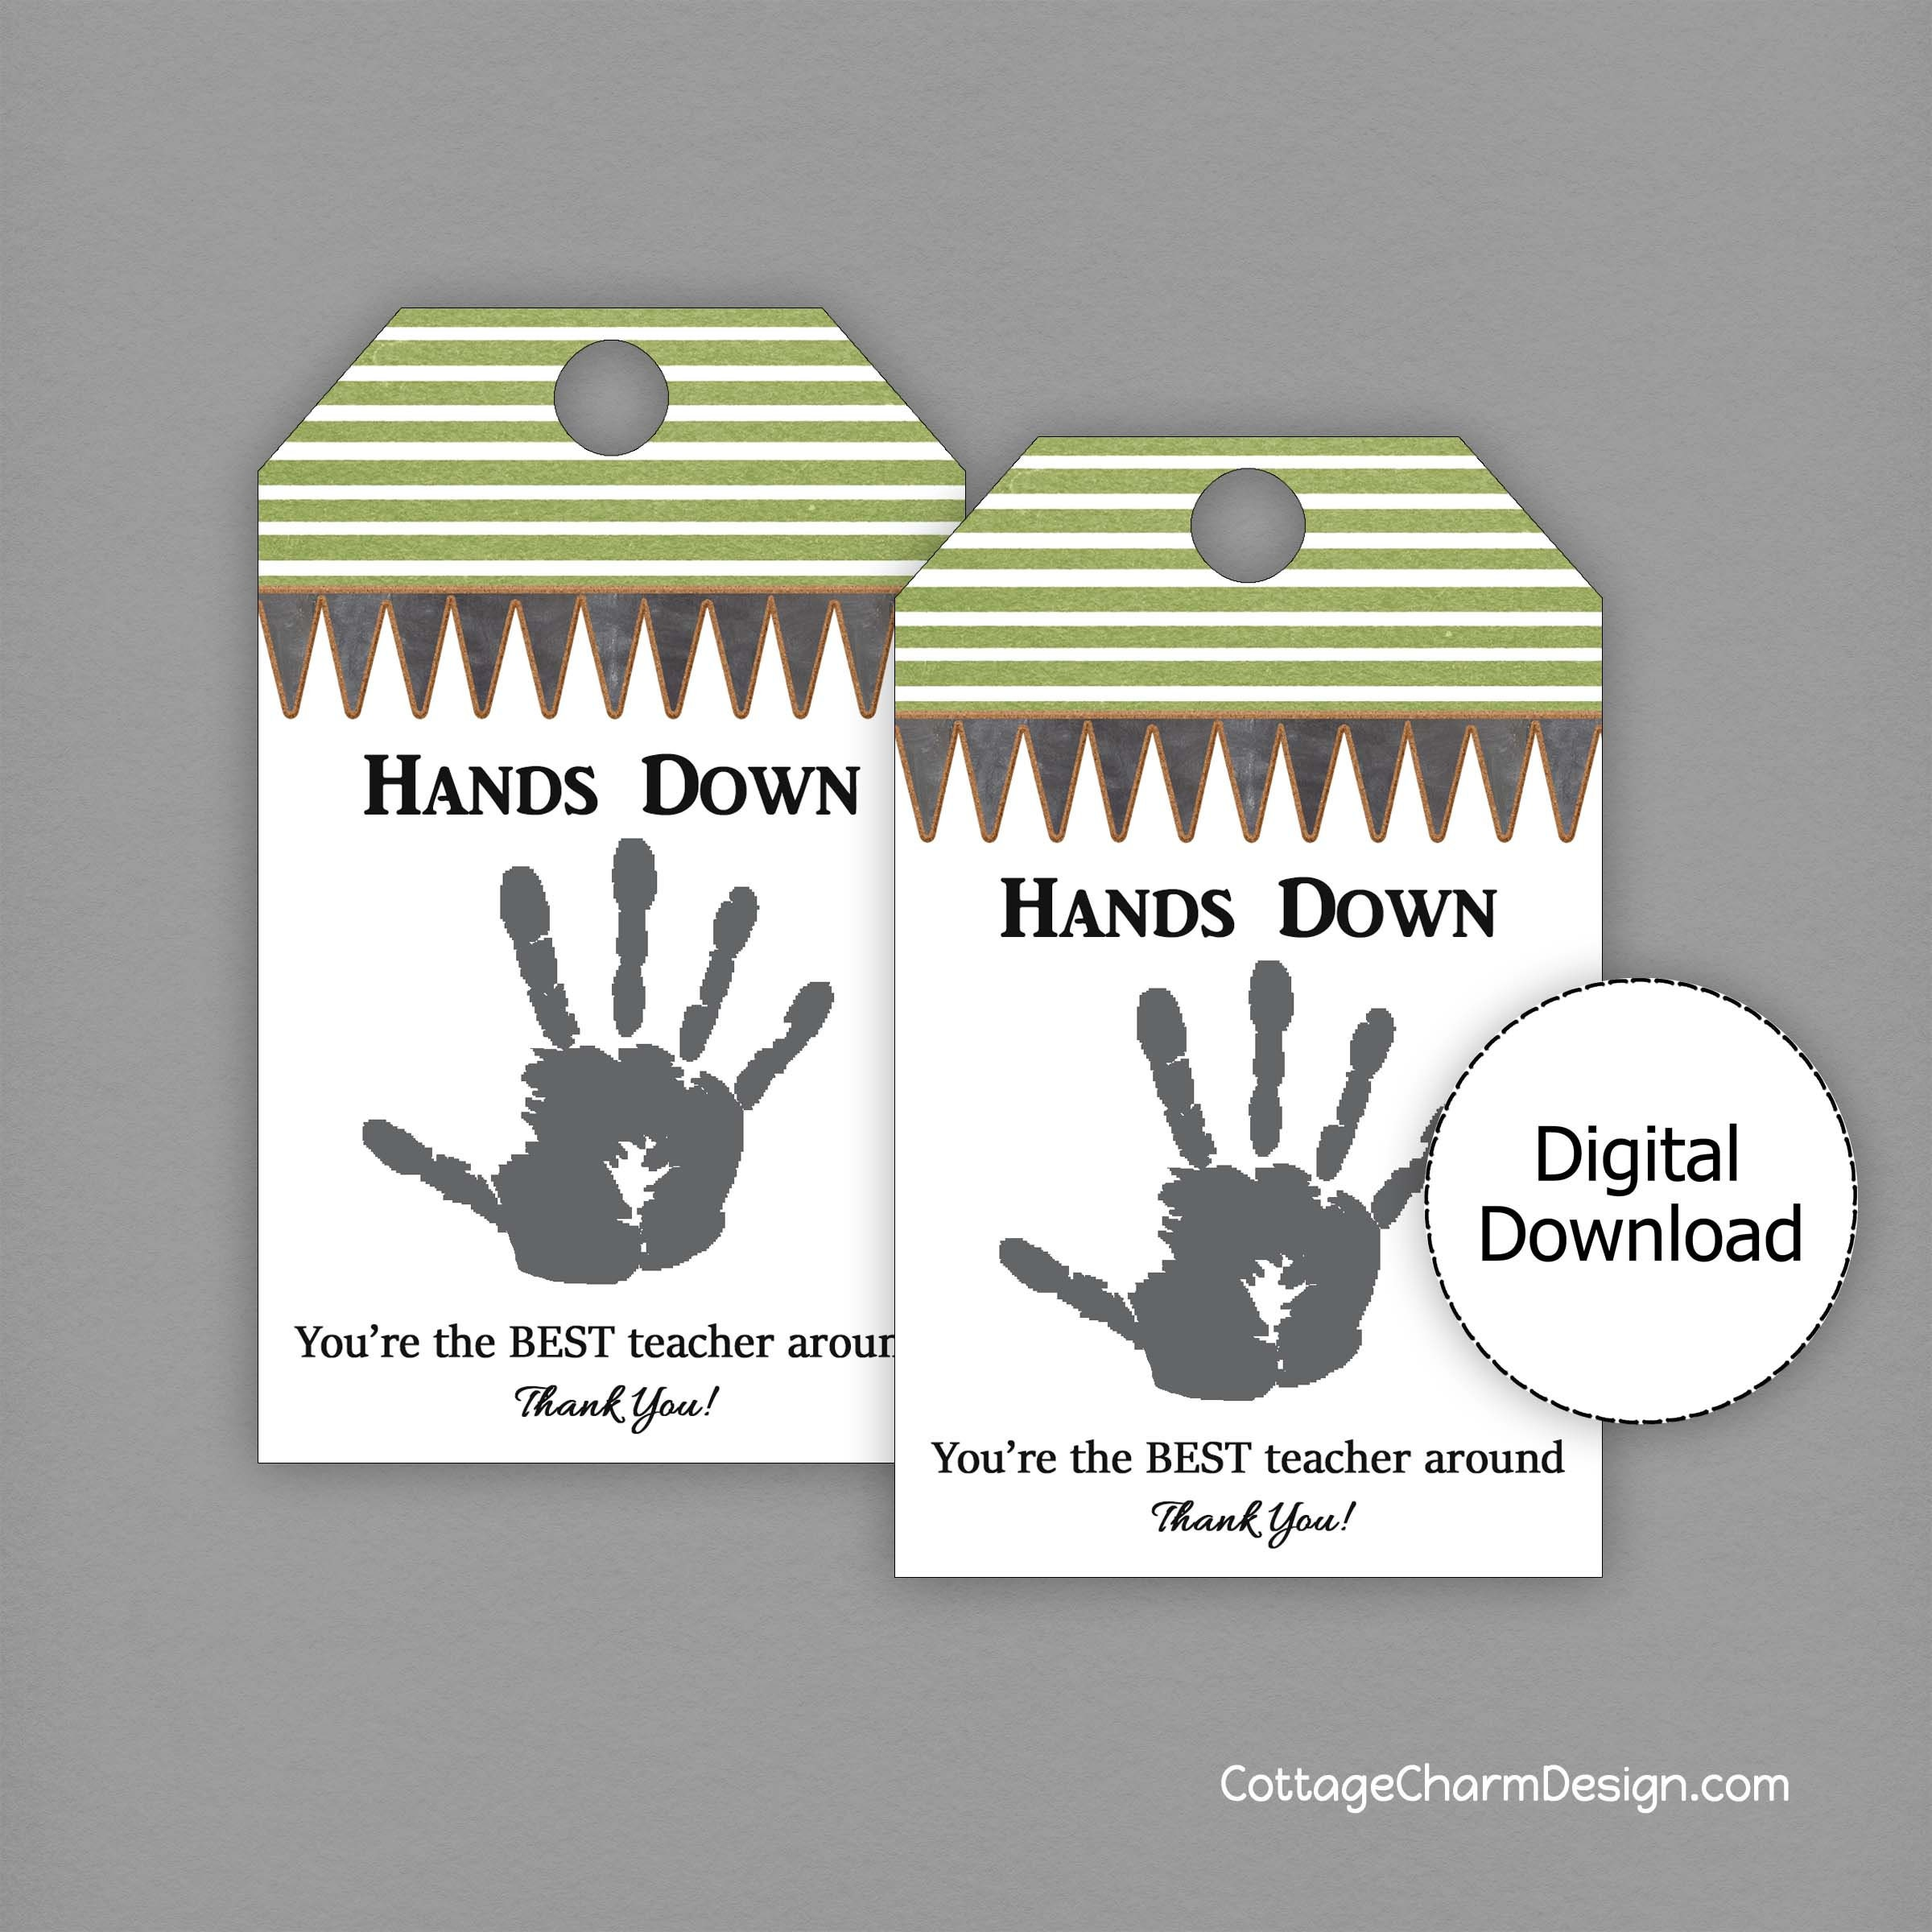 graphic about Hands Down You Re the Best Teacher Around Free Printable named Fingers Down, Trainer Appreciation Printable Tag, Instructor Thank Yourself Reward Tag, Lotion or Hand Sanitizer Present Tag, Fast Down load